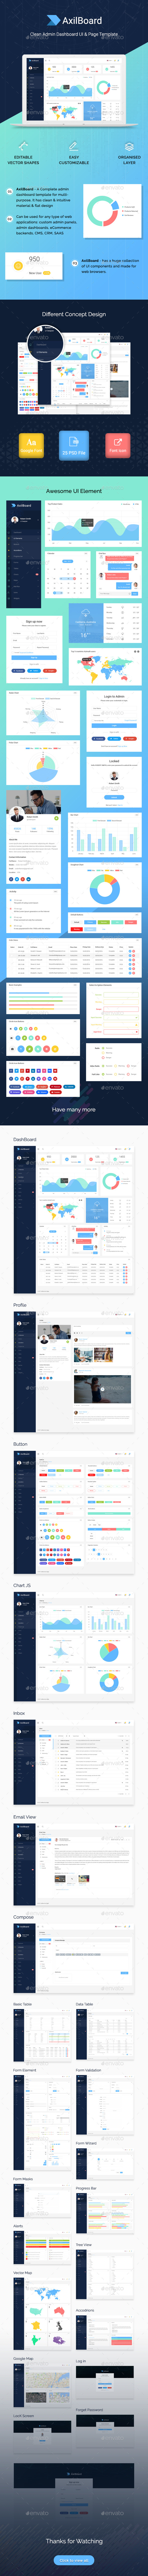 Lauxy - Material Dashboard Template PSD | Dashboard  UI Kit (User Interfaces)